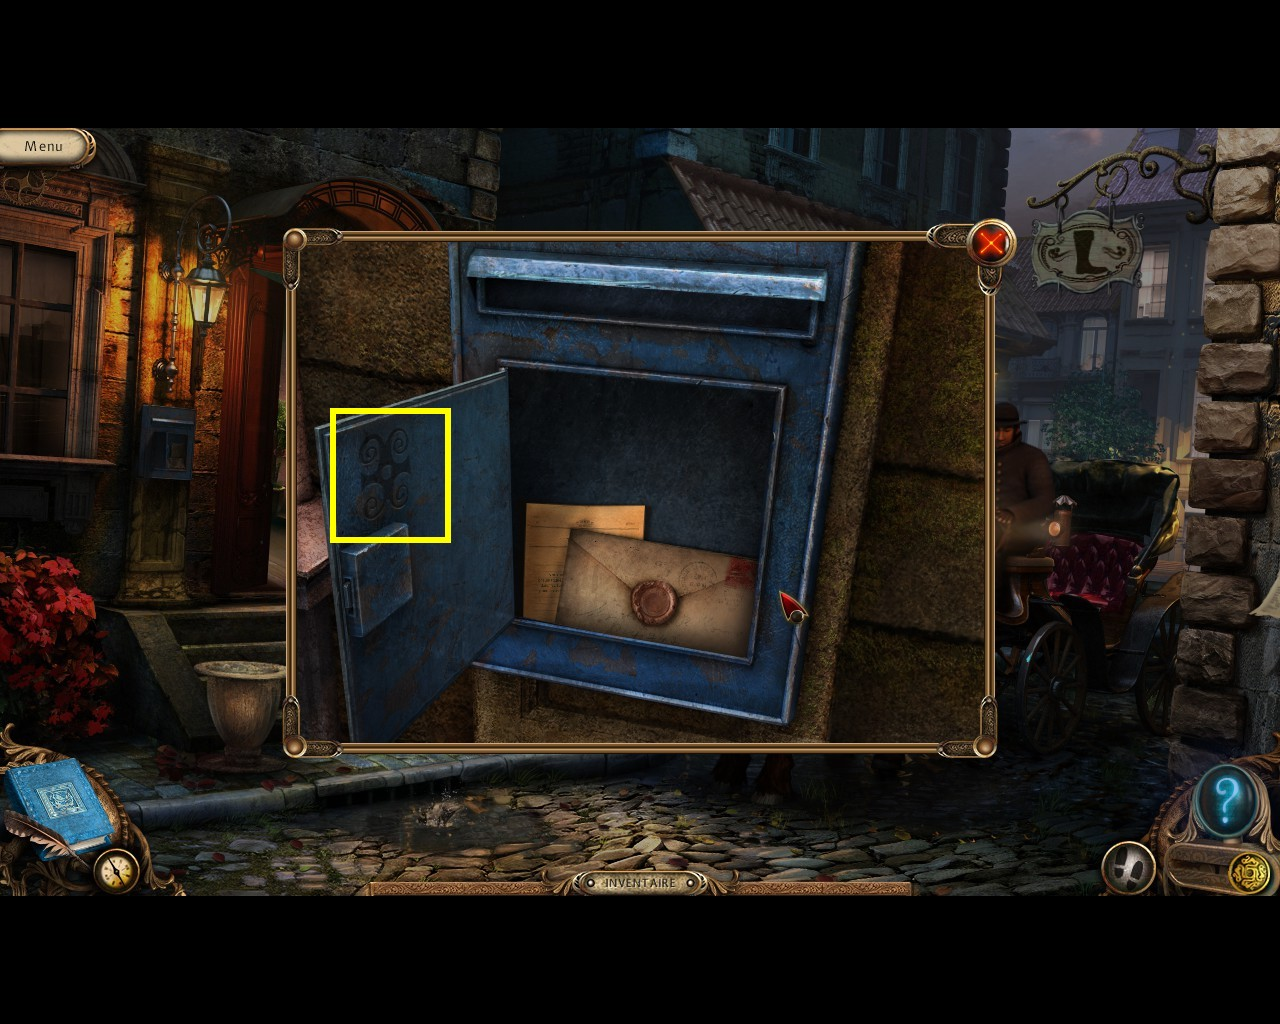 Steam community guide symbols location guide youll also find a symbol in one of the shelves of the bookcase in the library you need to repair the ladder with wheels first buycottarizona Image collections